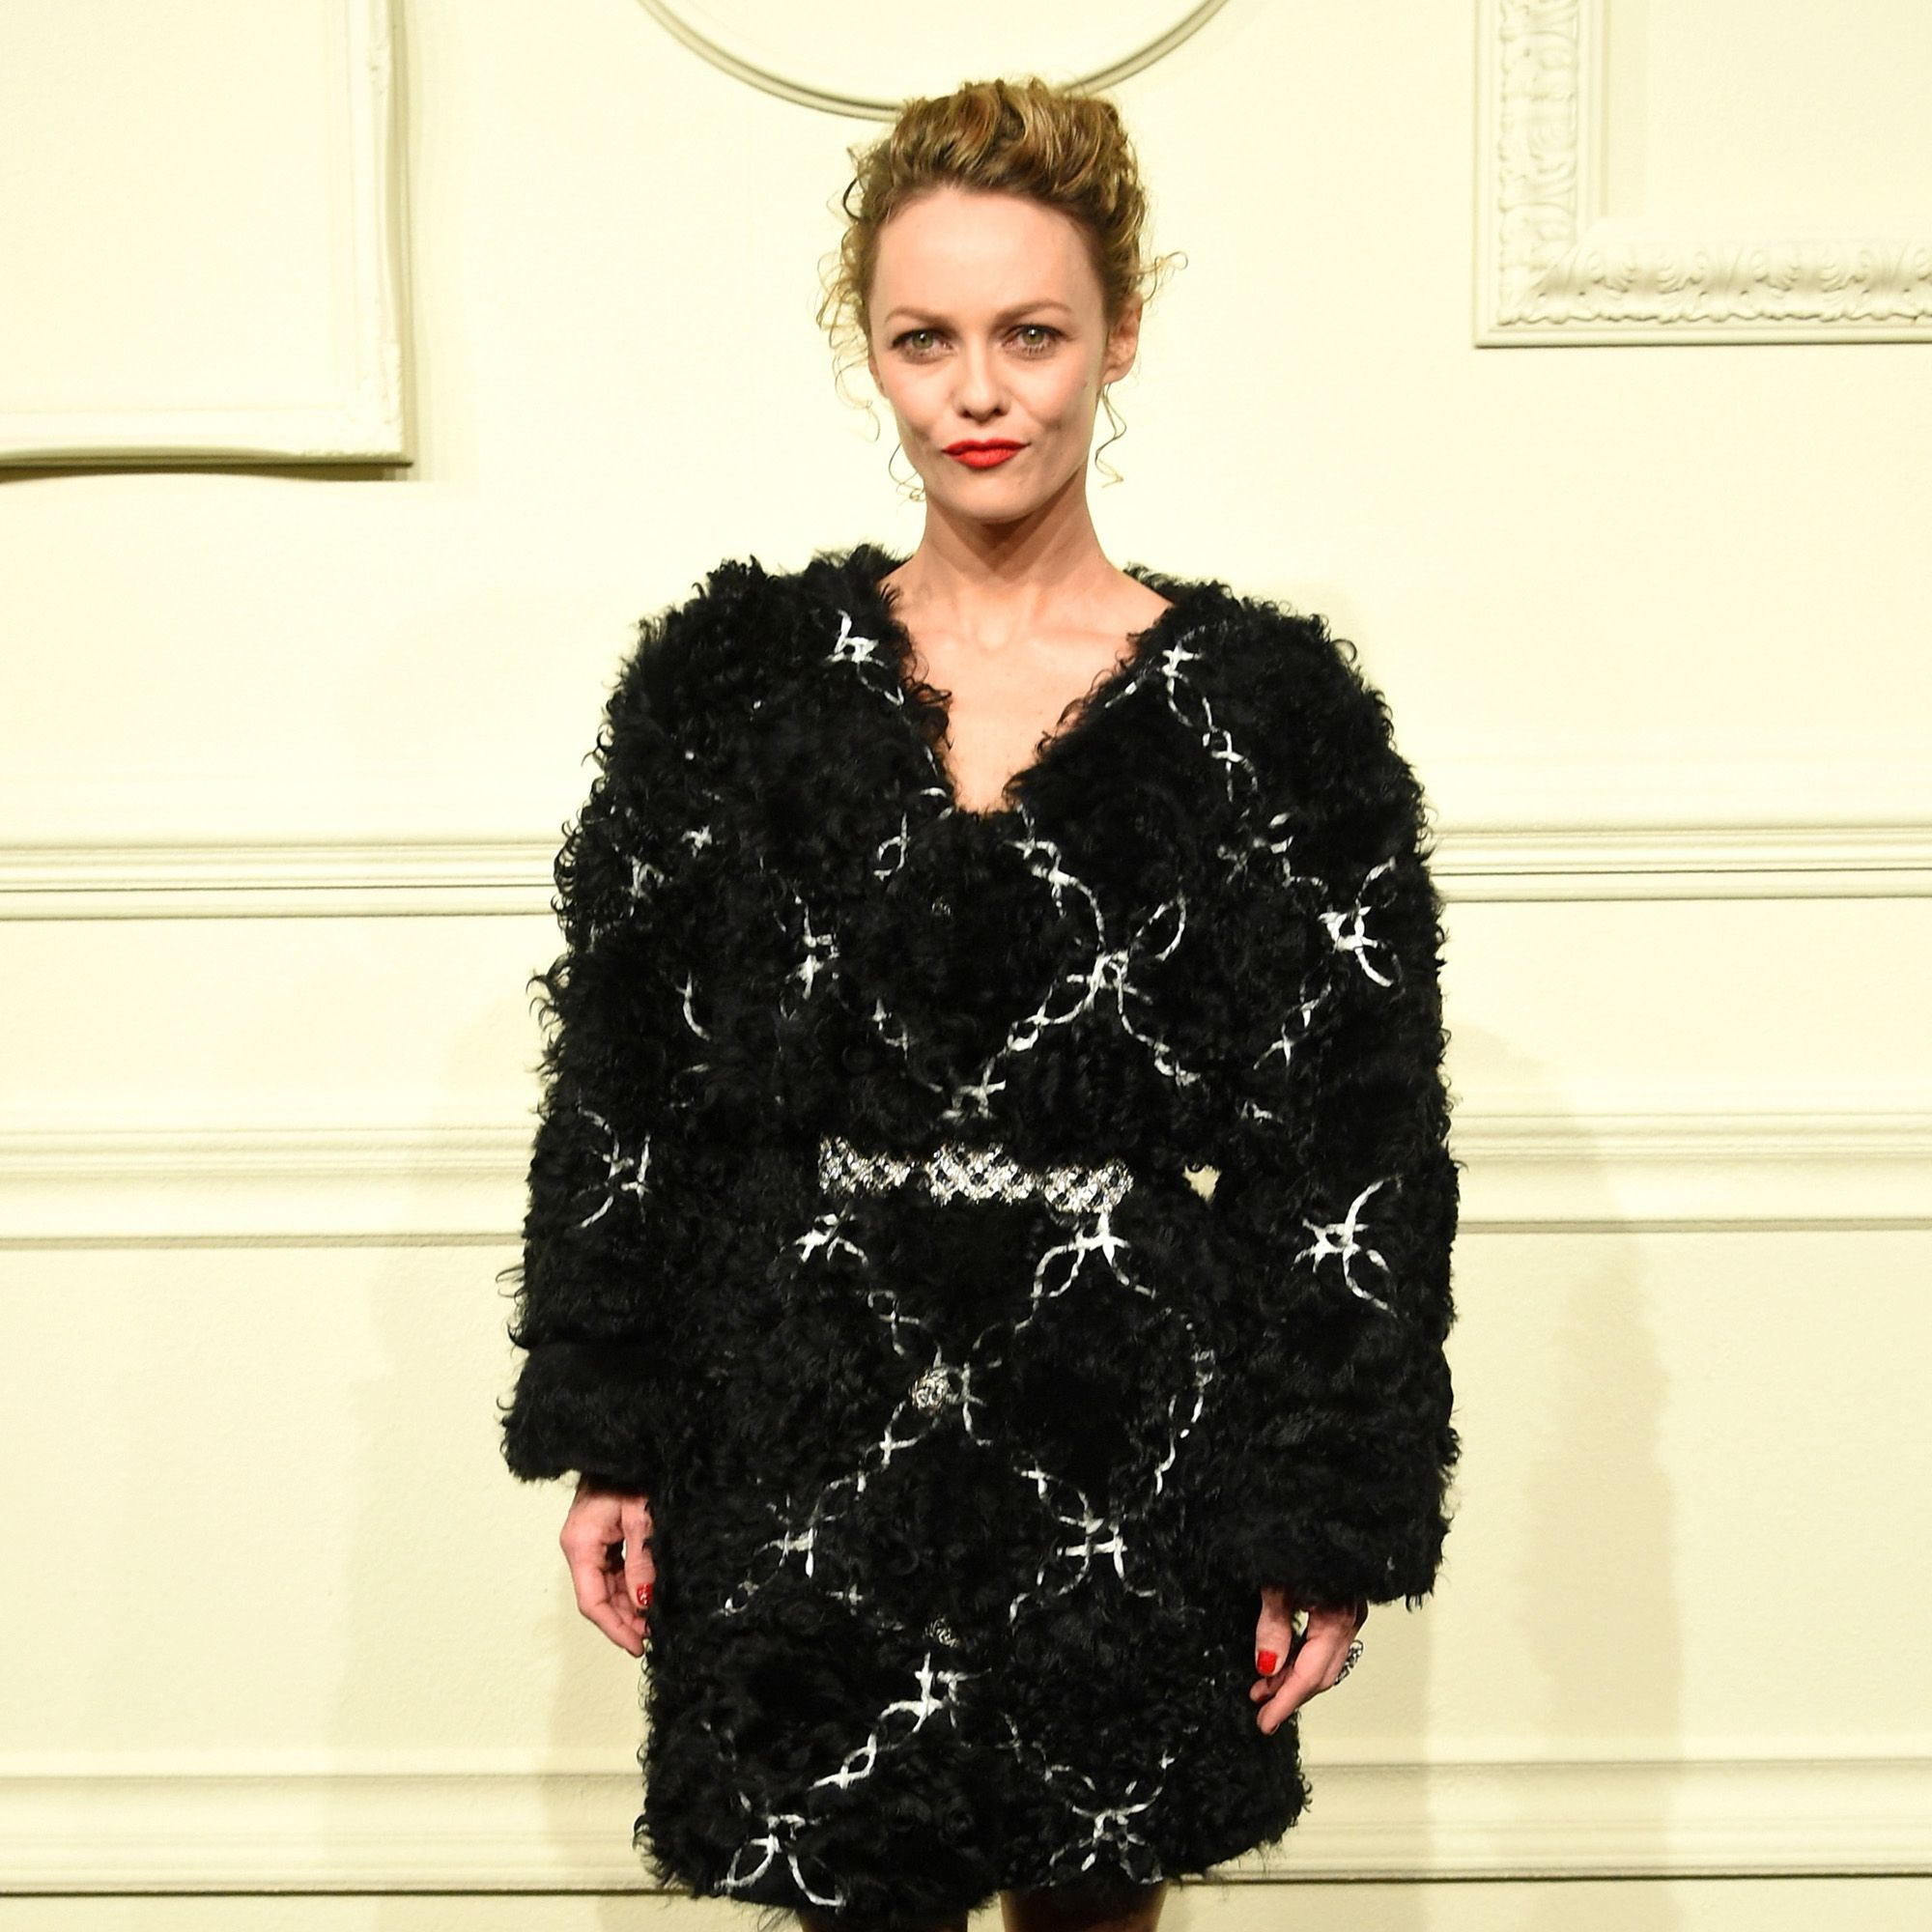 NEW YORK, NY - MARCH 31:  Actress Vanessa Paradis attends the CHANEL Paris-Salzburg 2014/15 Metiers d'Art Collection in New York City at the Park Avenue Armory on March 31, 2015 in New York City.  (Photo by Andrew H. Walker/WireImage)